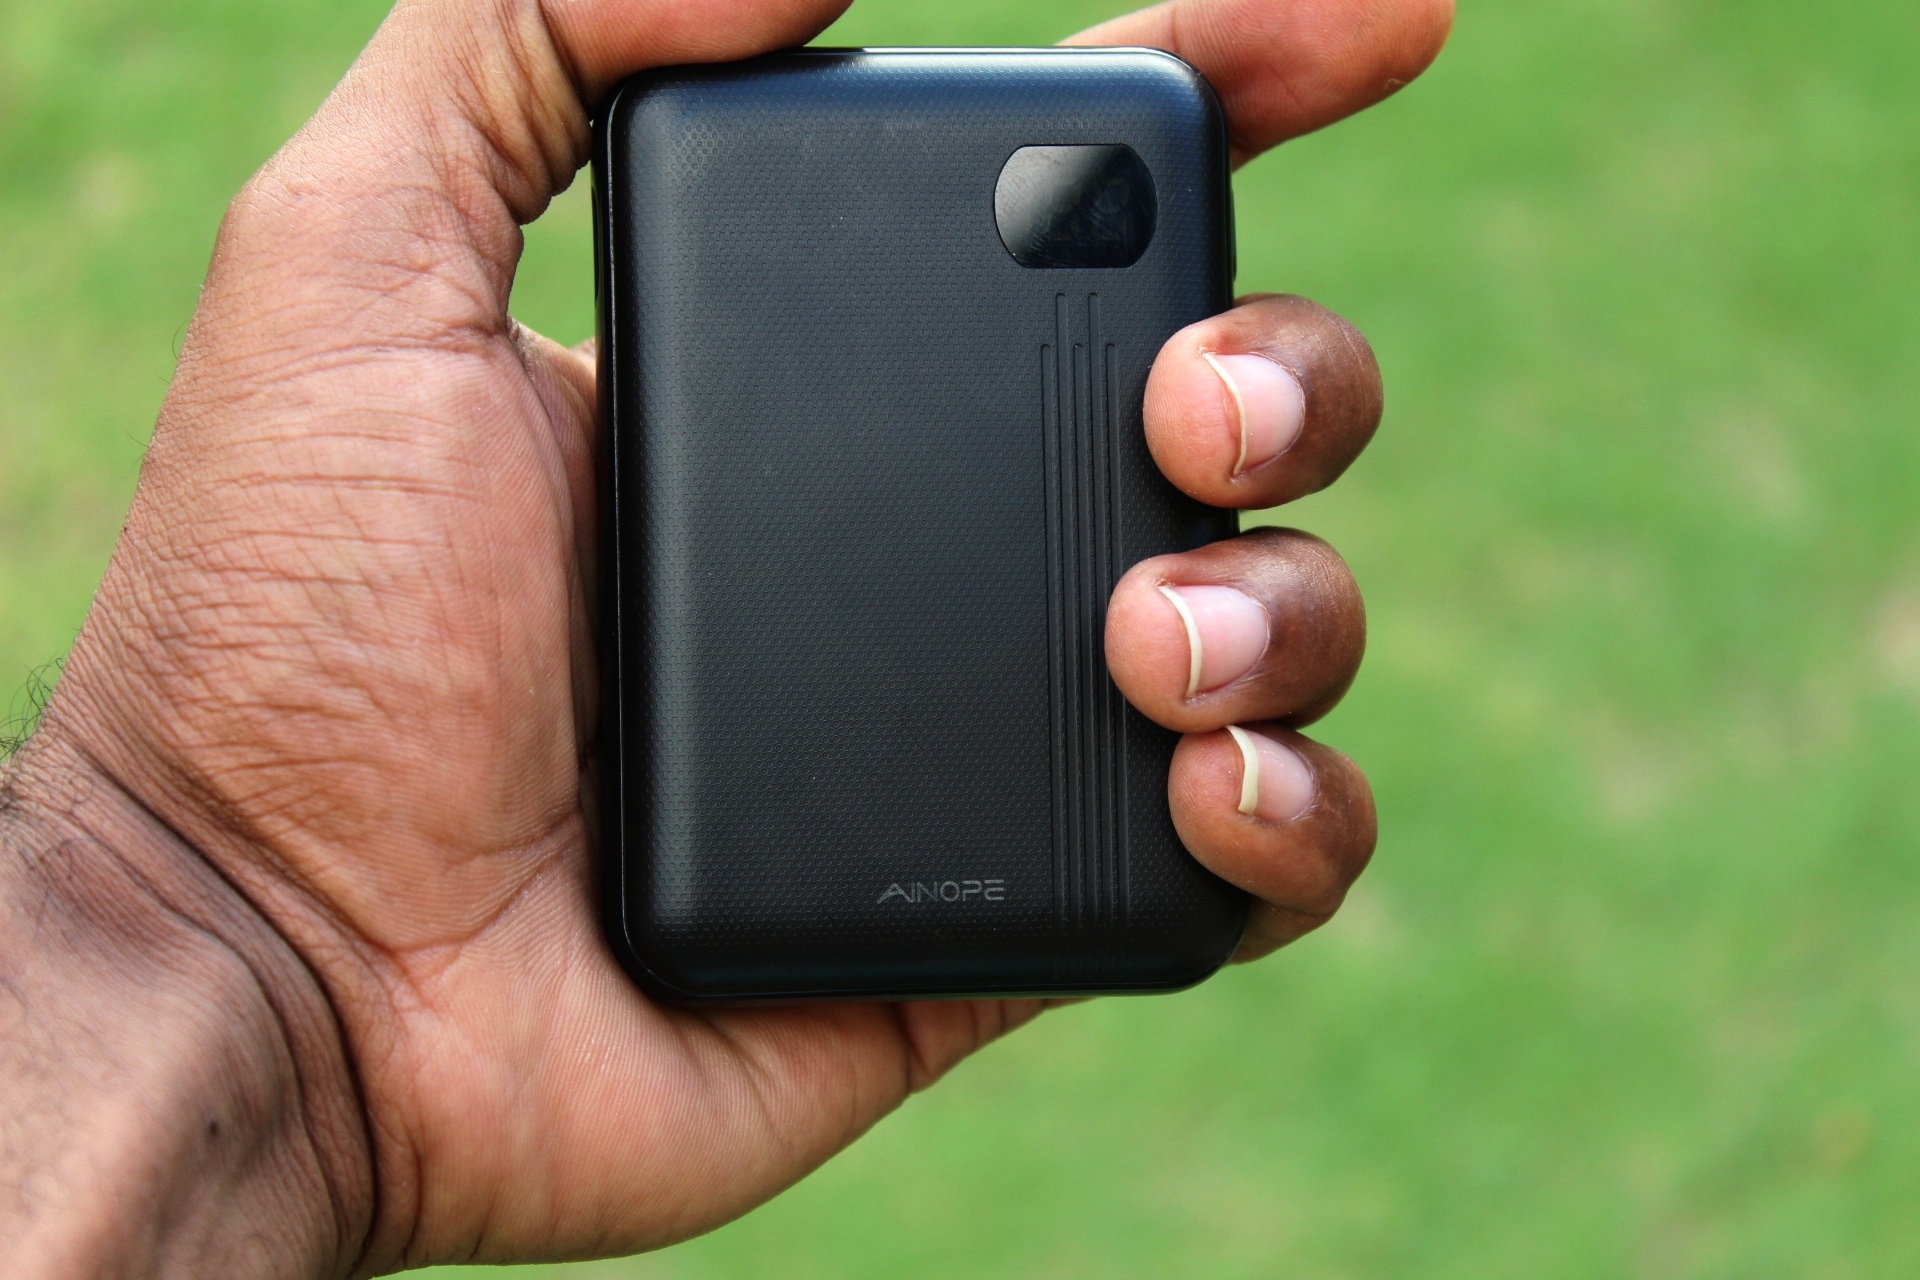 ANIOPE Vanguard – X1 Power Bank 10,000mAh – REVIEW